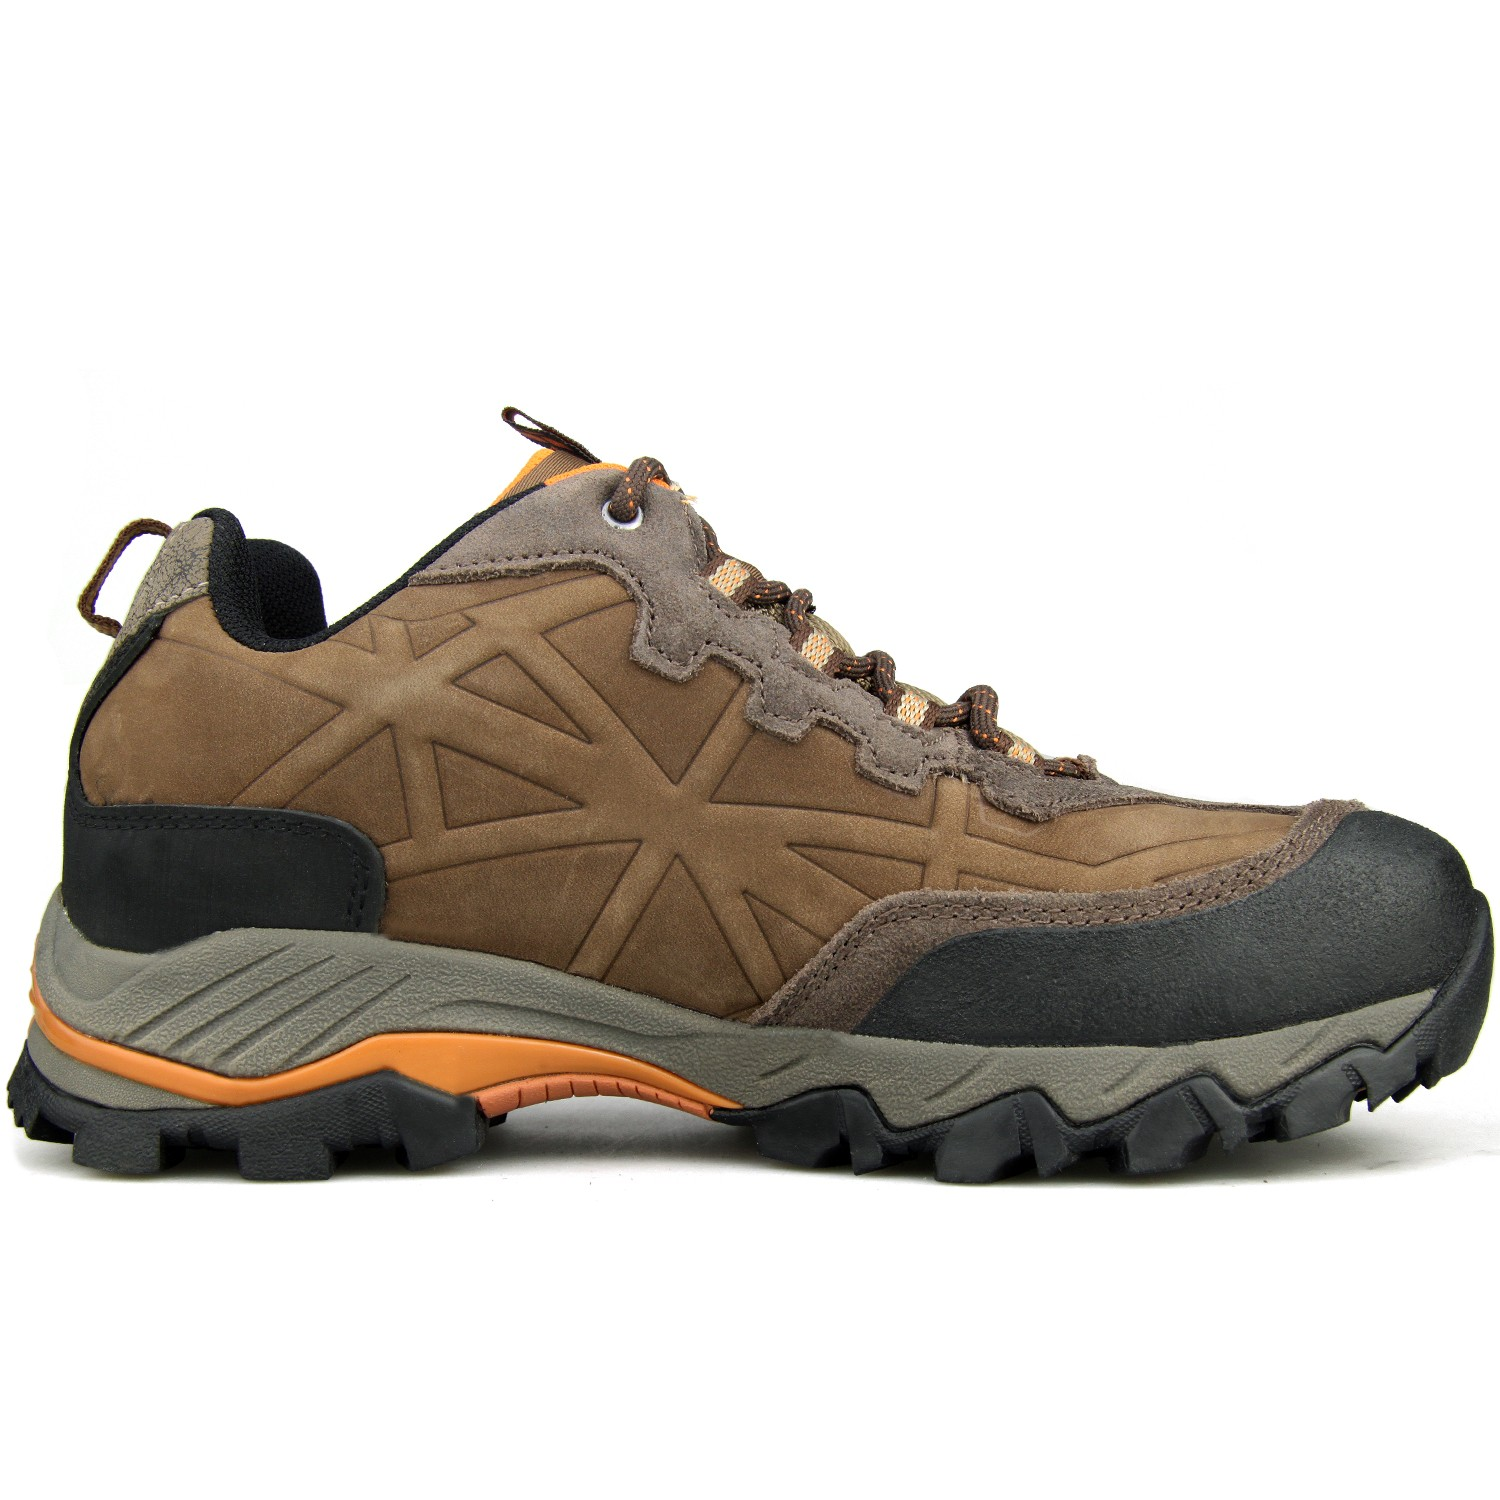 Men's Light Hiking Boots Hiking Shoes Manufacturers, Men's Light Hiking Boots Hiking Shoes Factory, Supply Men's Light Hiking Boots Hiking Shoes